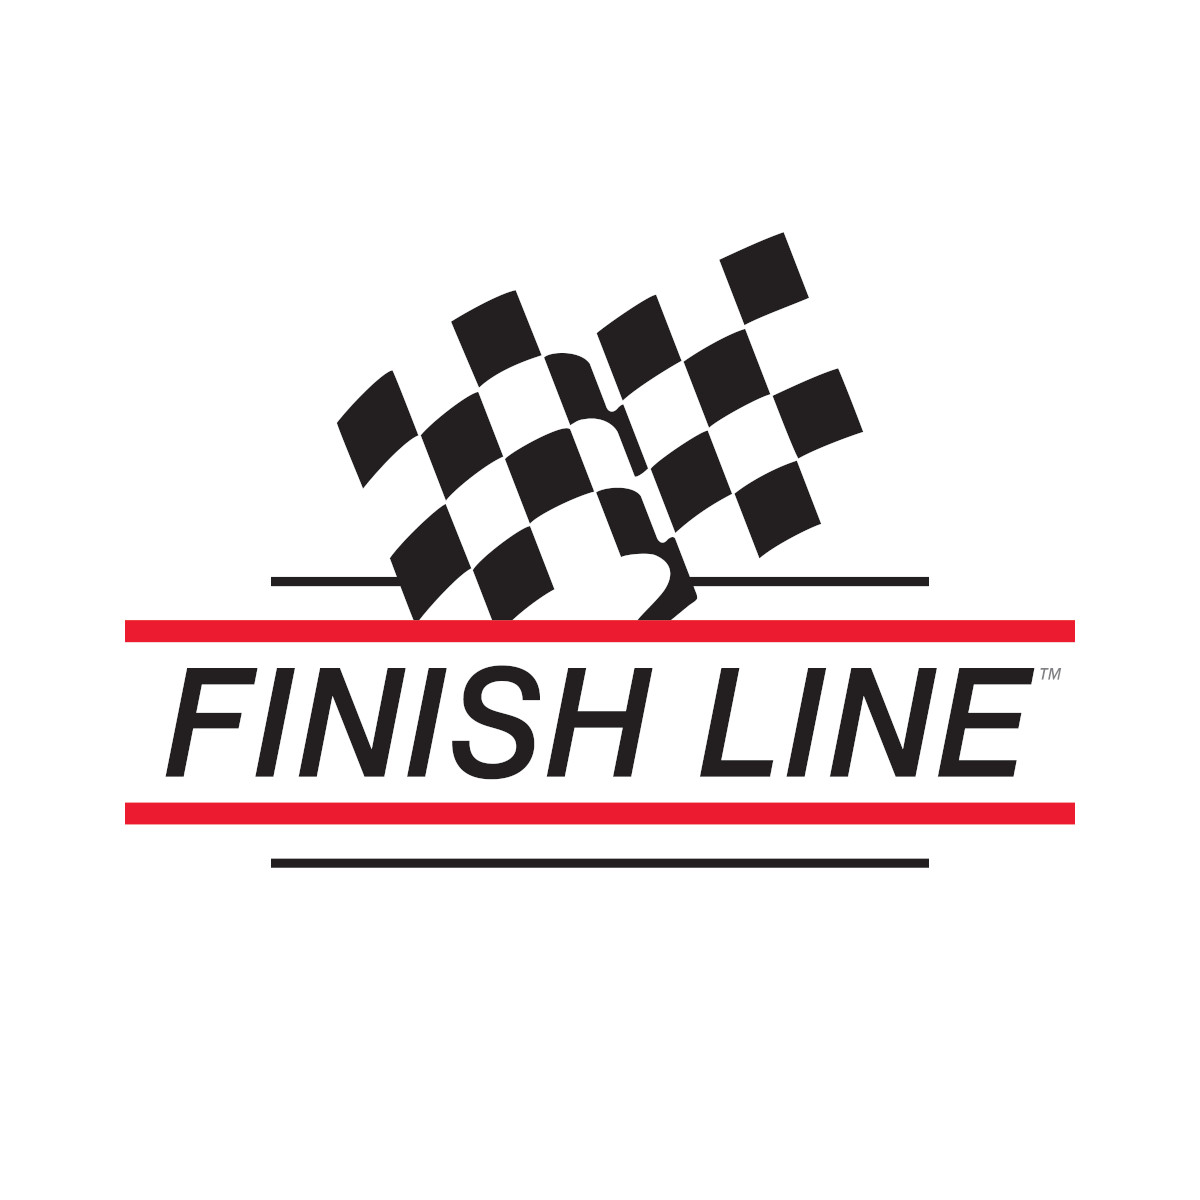 Finish Line lubricants and cleaners